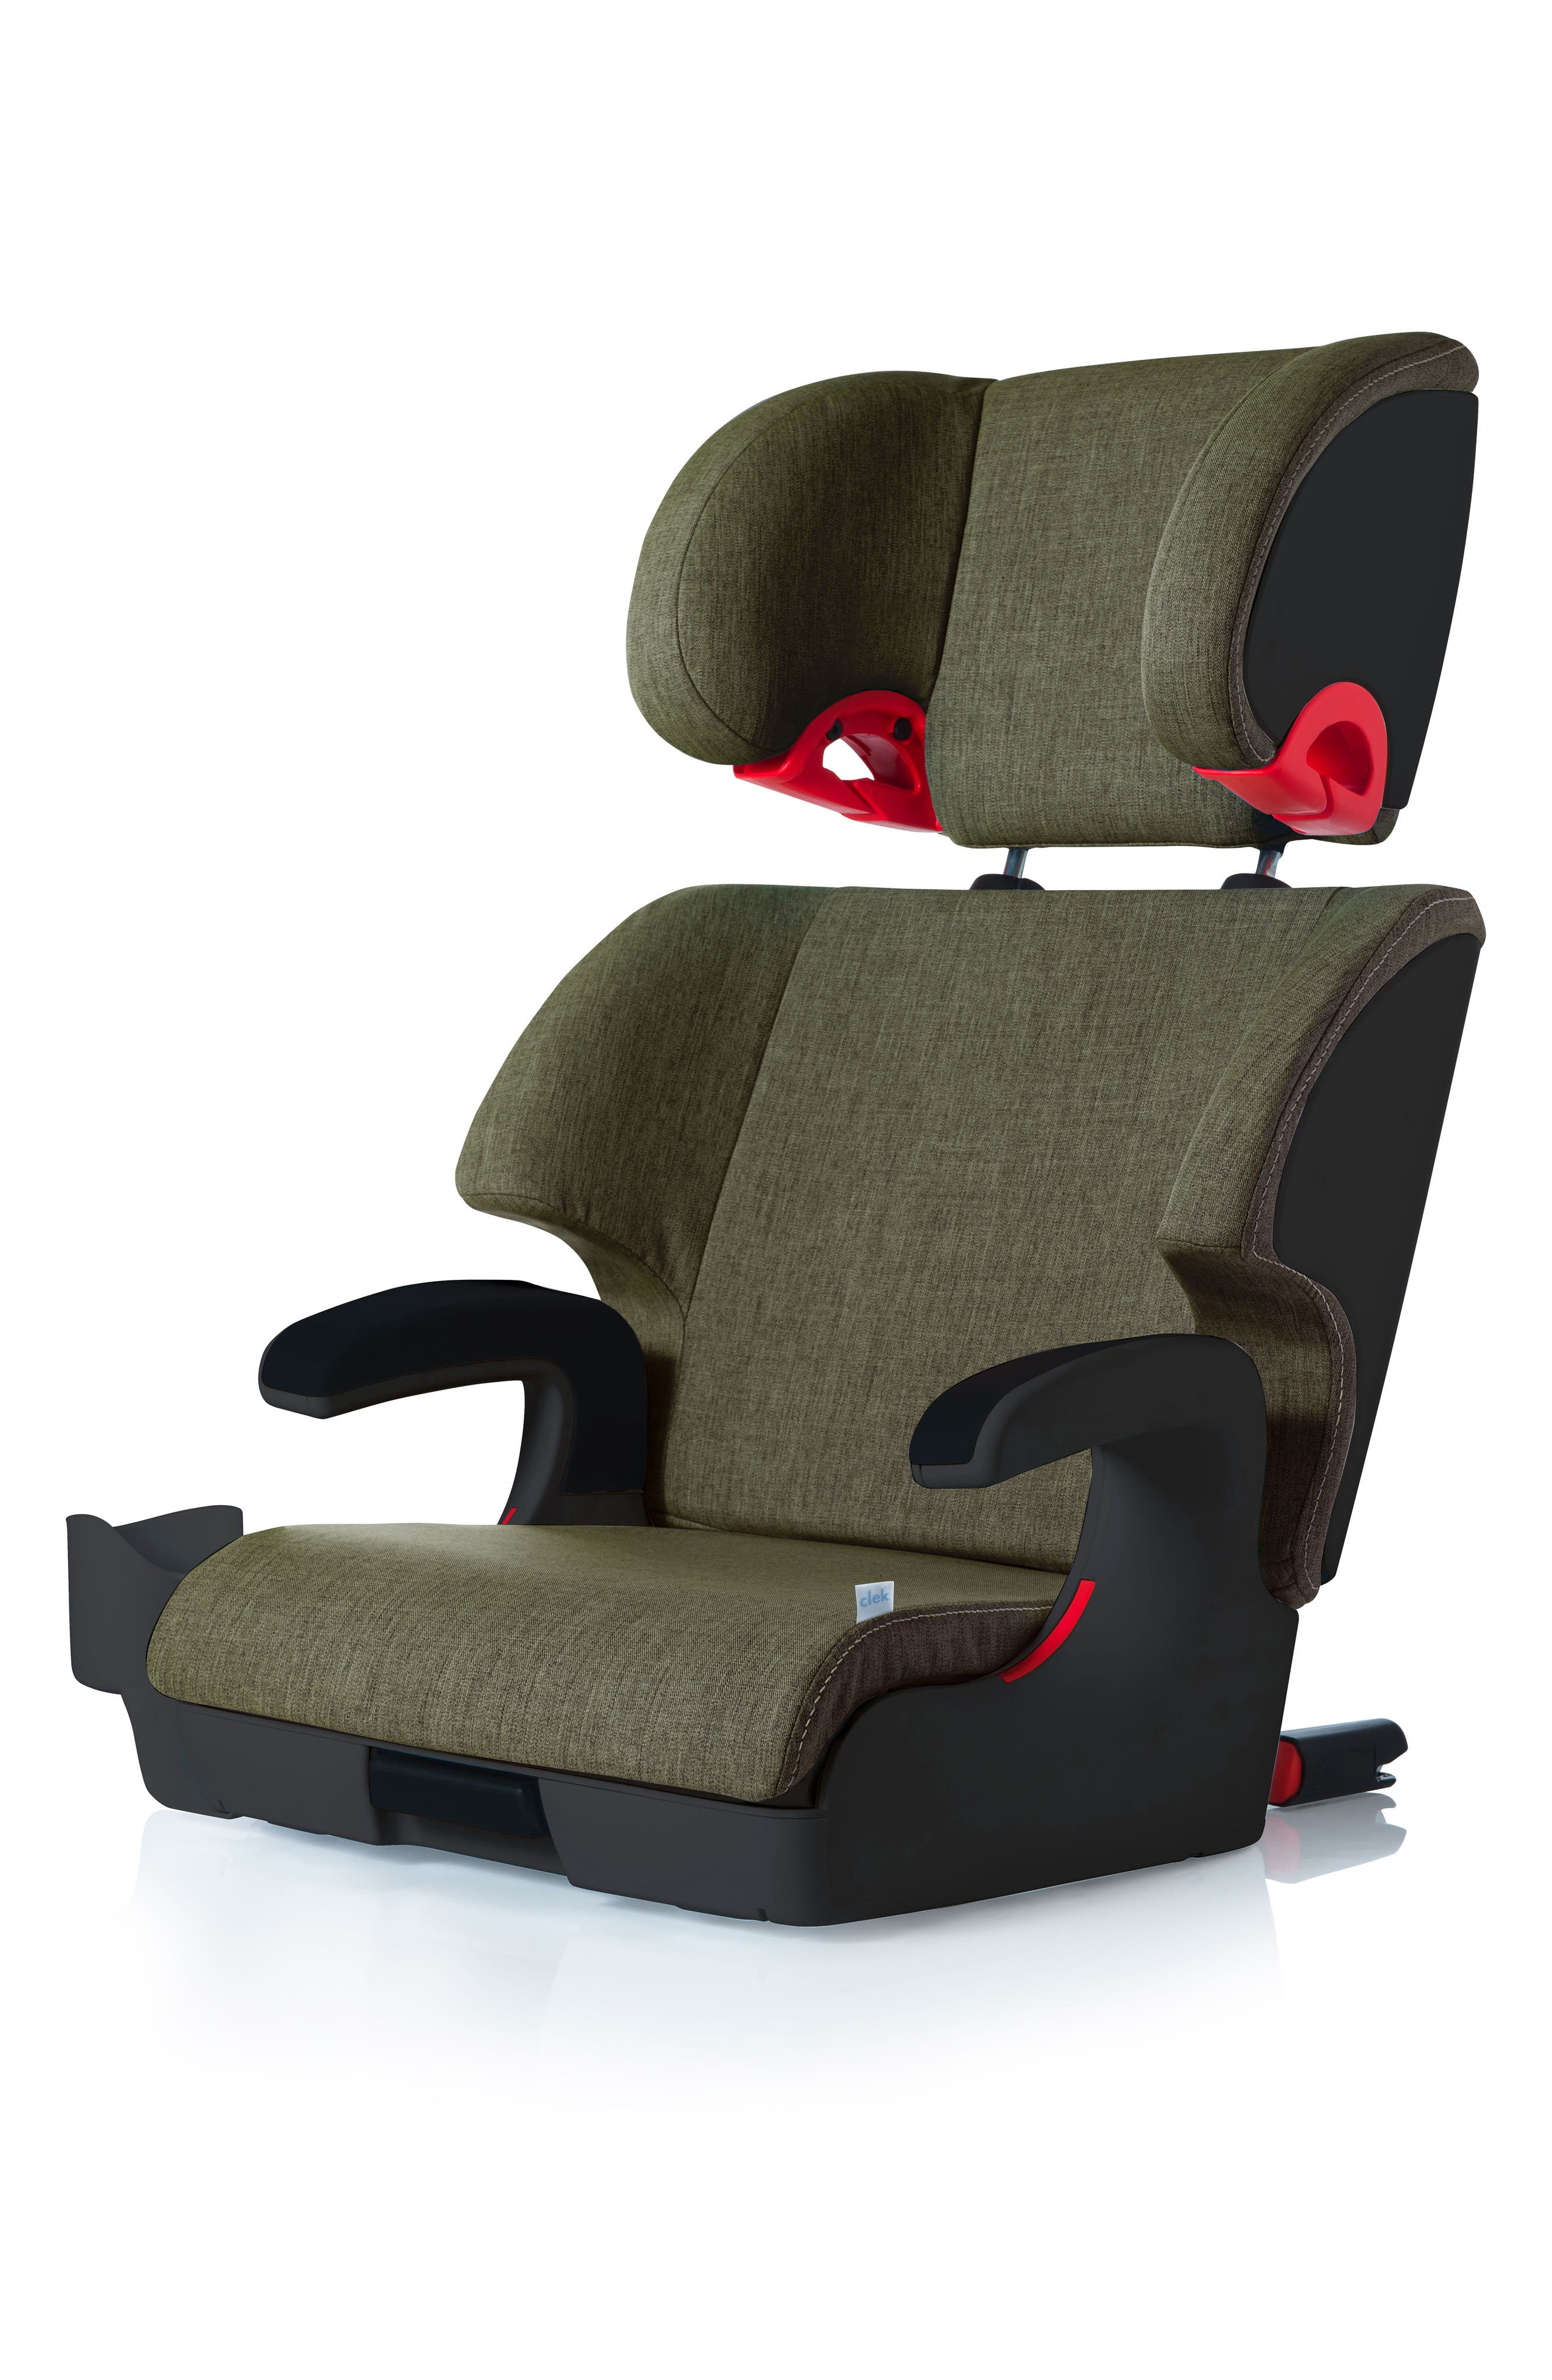 Oobr Convertible Full Back/Backless Booster Seat,                             Main thumbnail 1, color,                             Woodlands